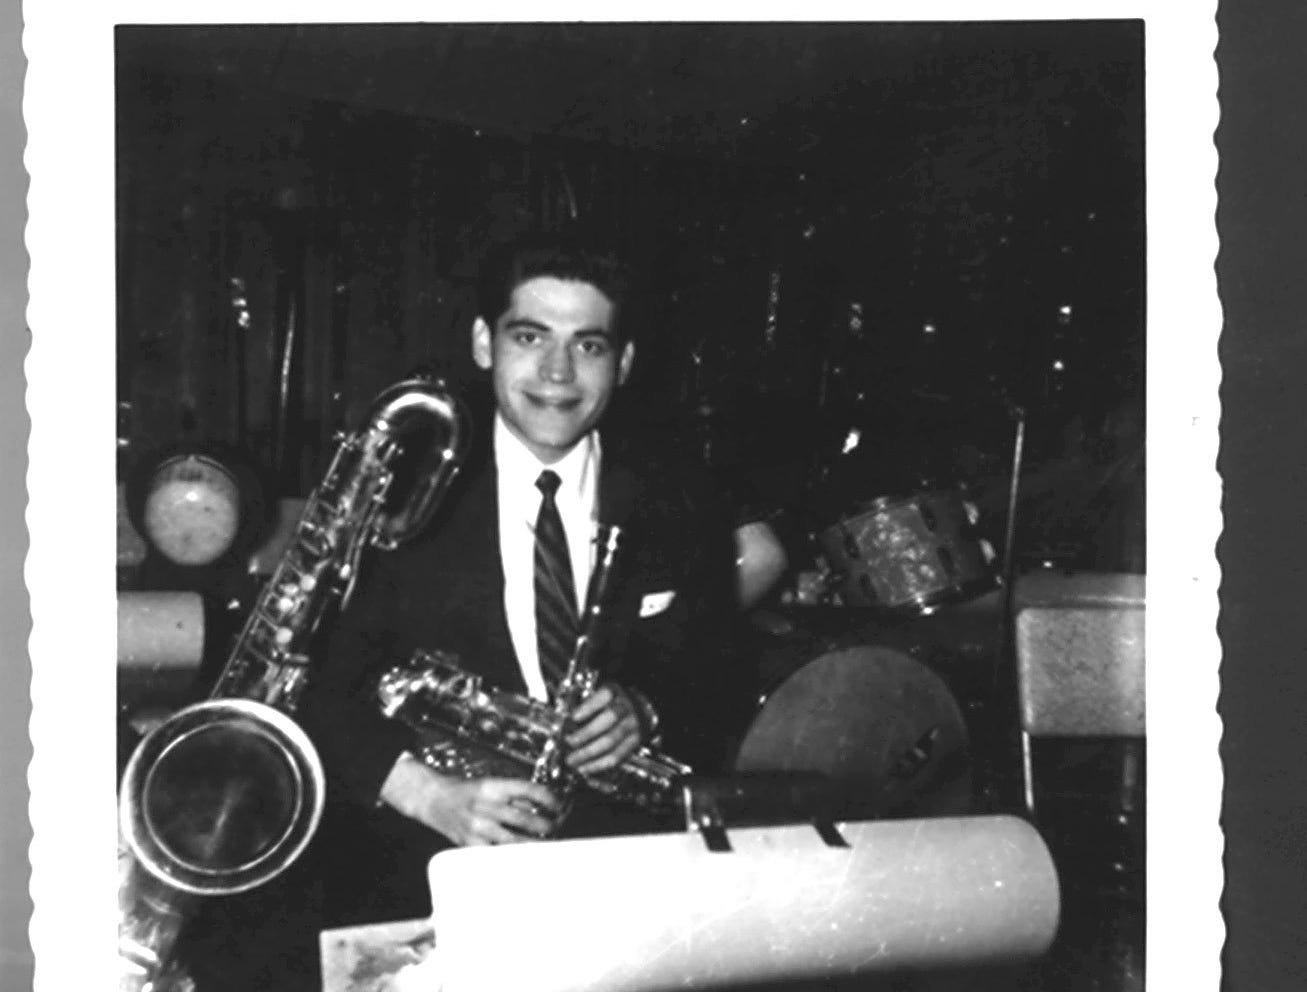 Arthur Buzzy James Ernst of Covington, Ky. is shown playing in a band.